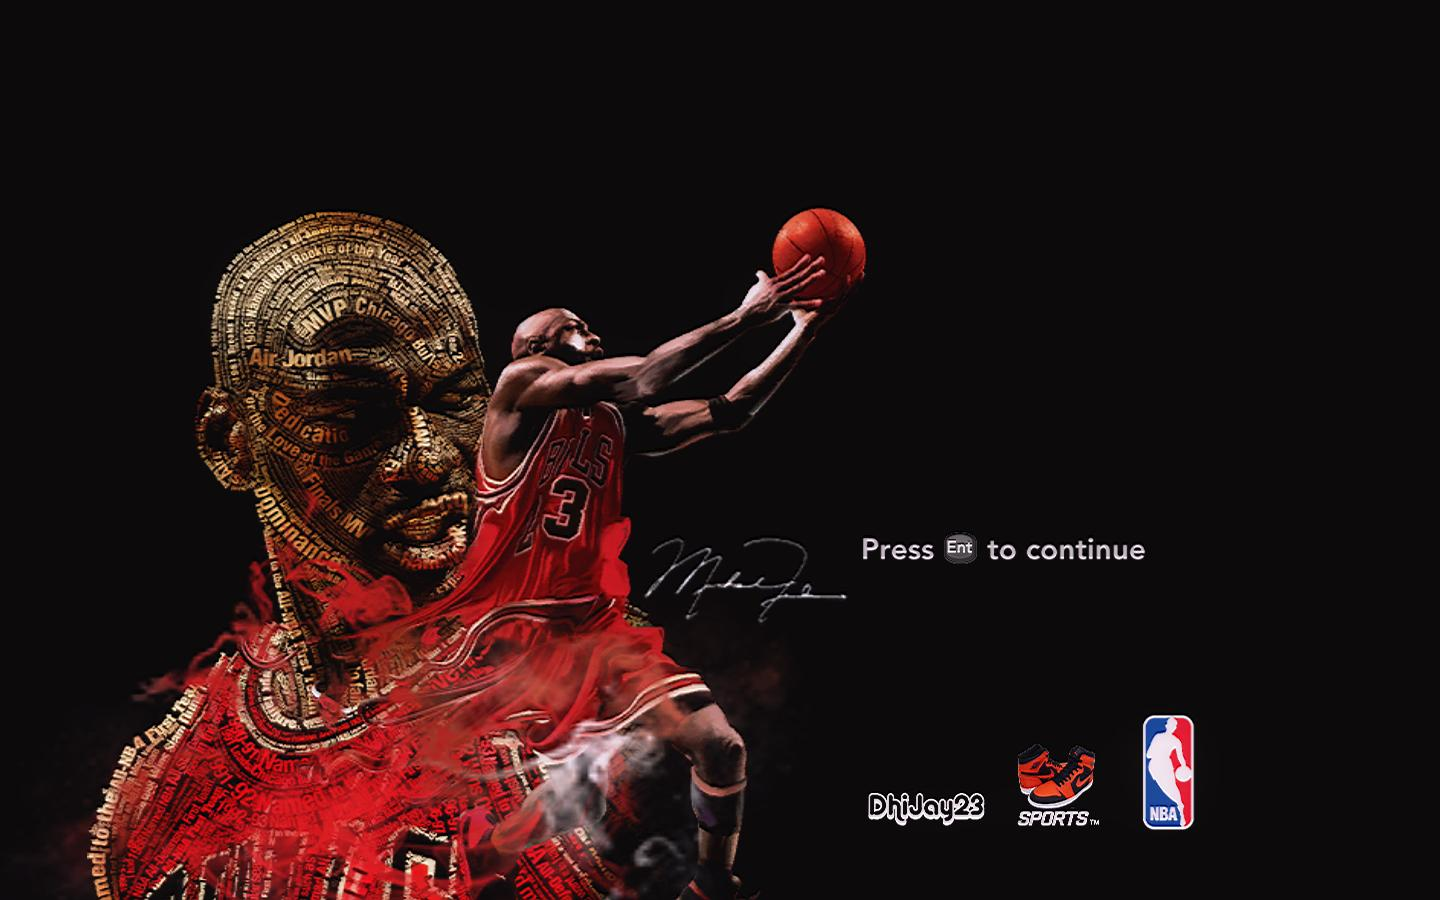 Nba 2k12 air jordan graphic mod nba2k org